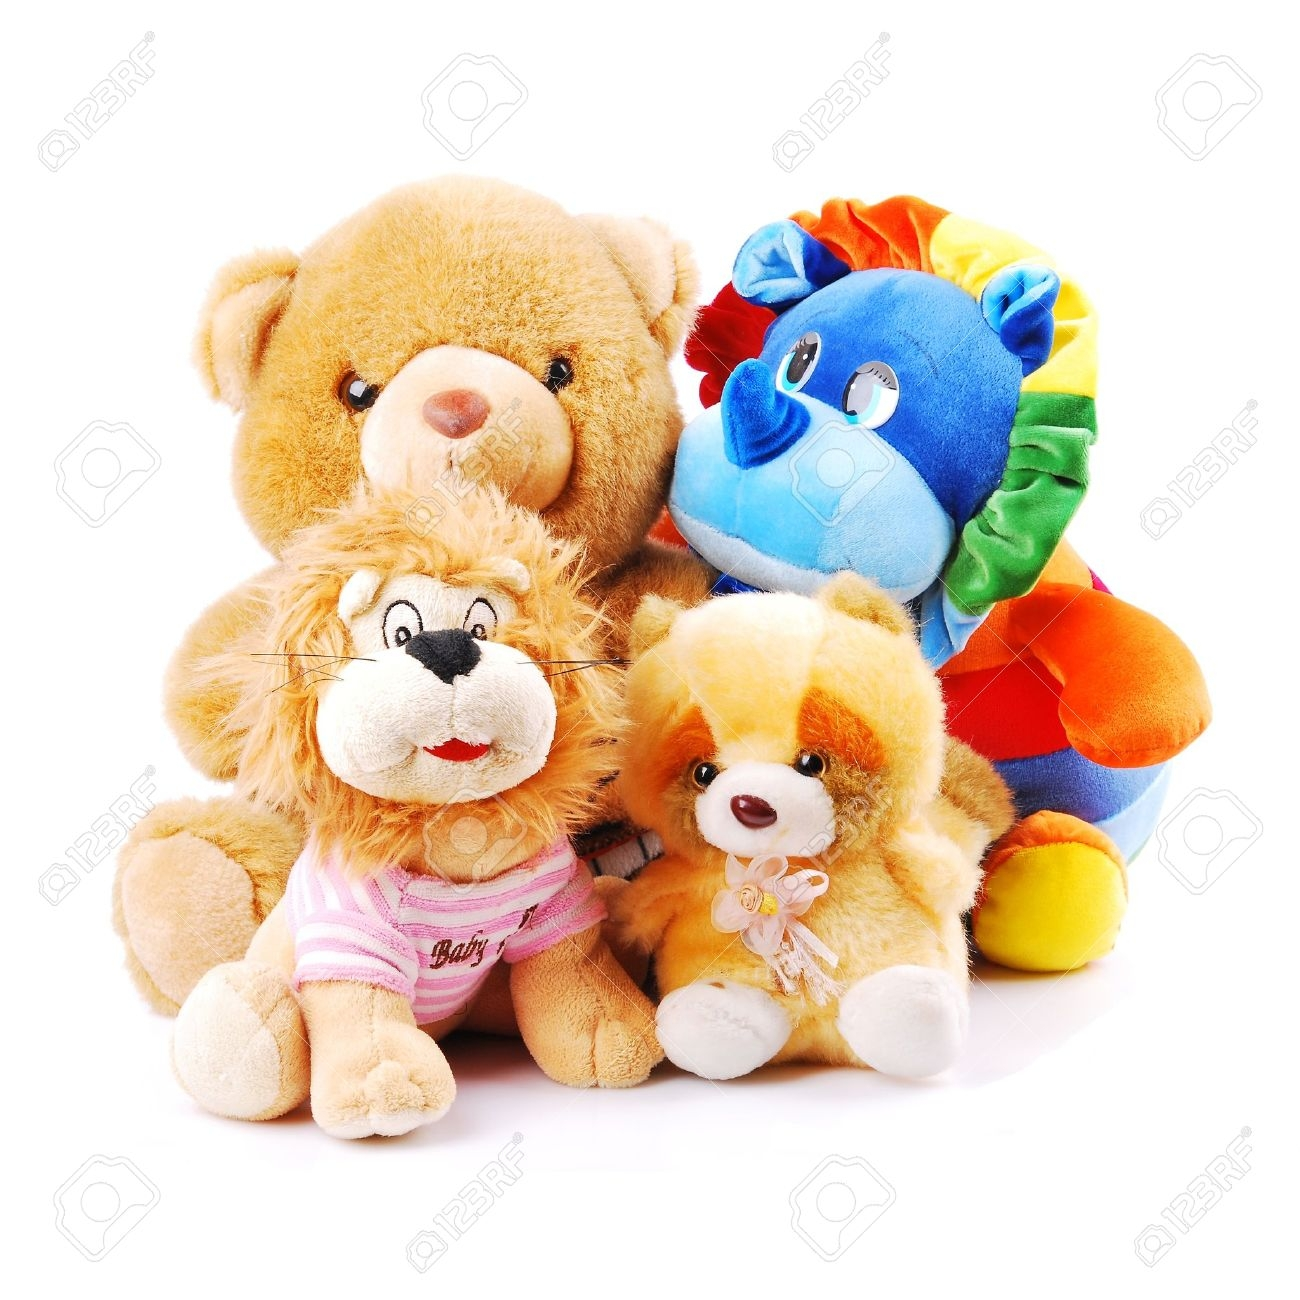 Stuffed Animal Clipart favorite toy 26.